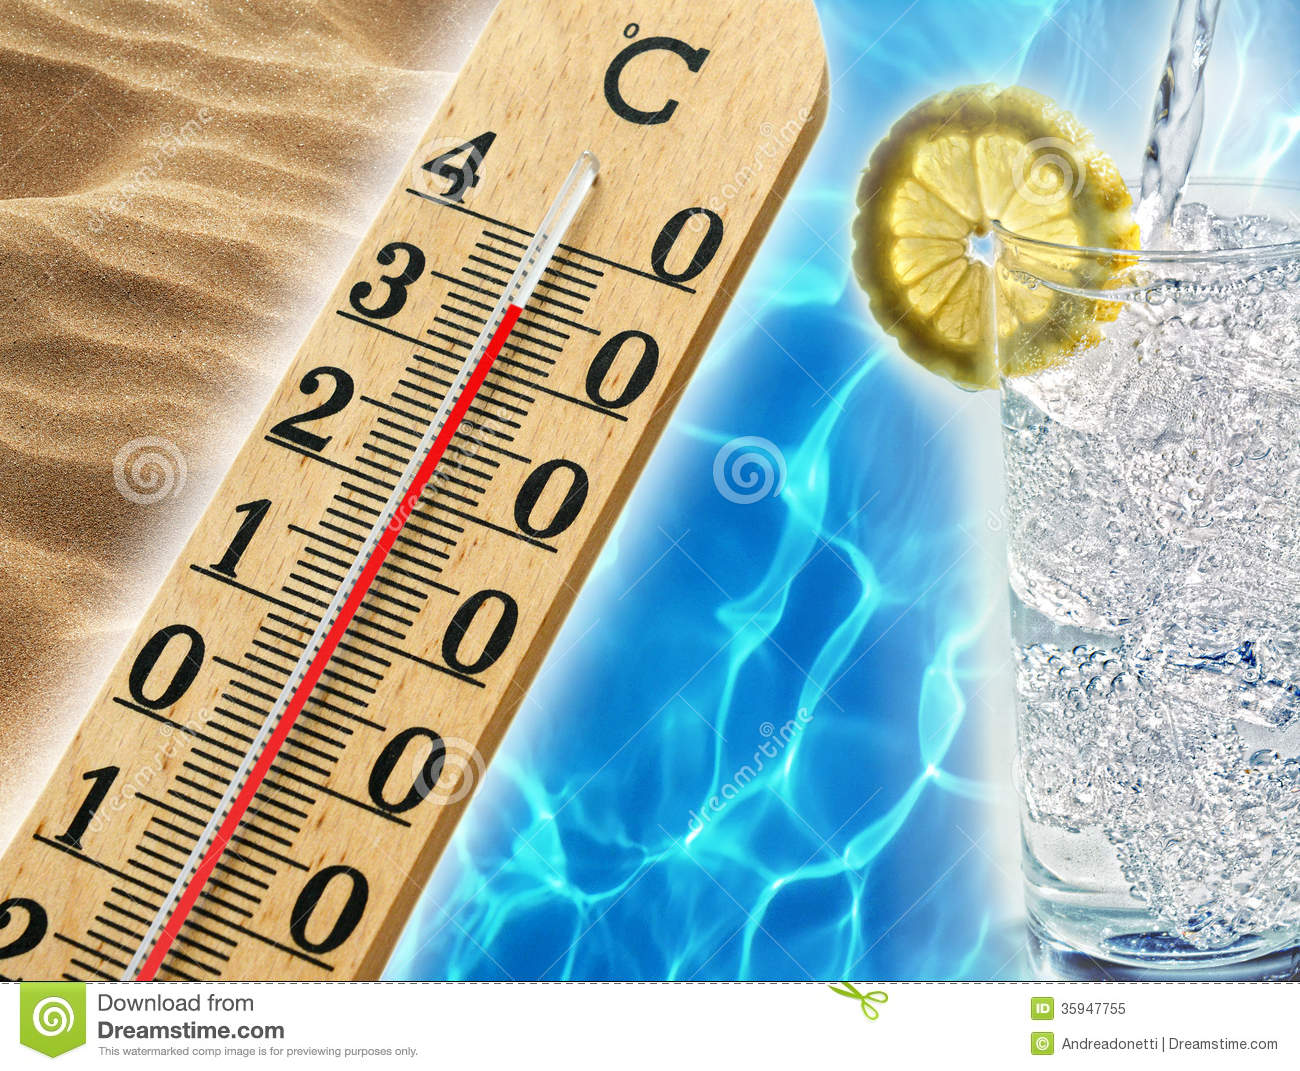 3d Wallpaper In Qatar Hot Summer Weather Royalty Free Stock Photo Image 35947755